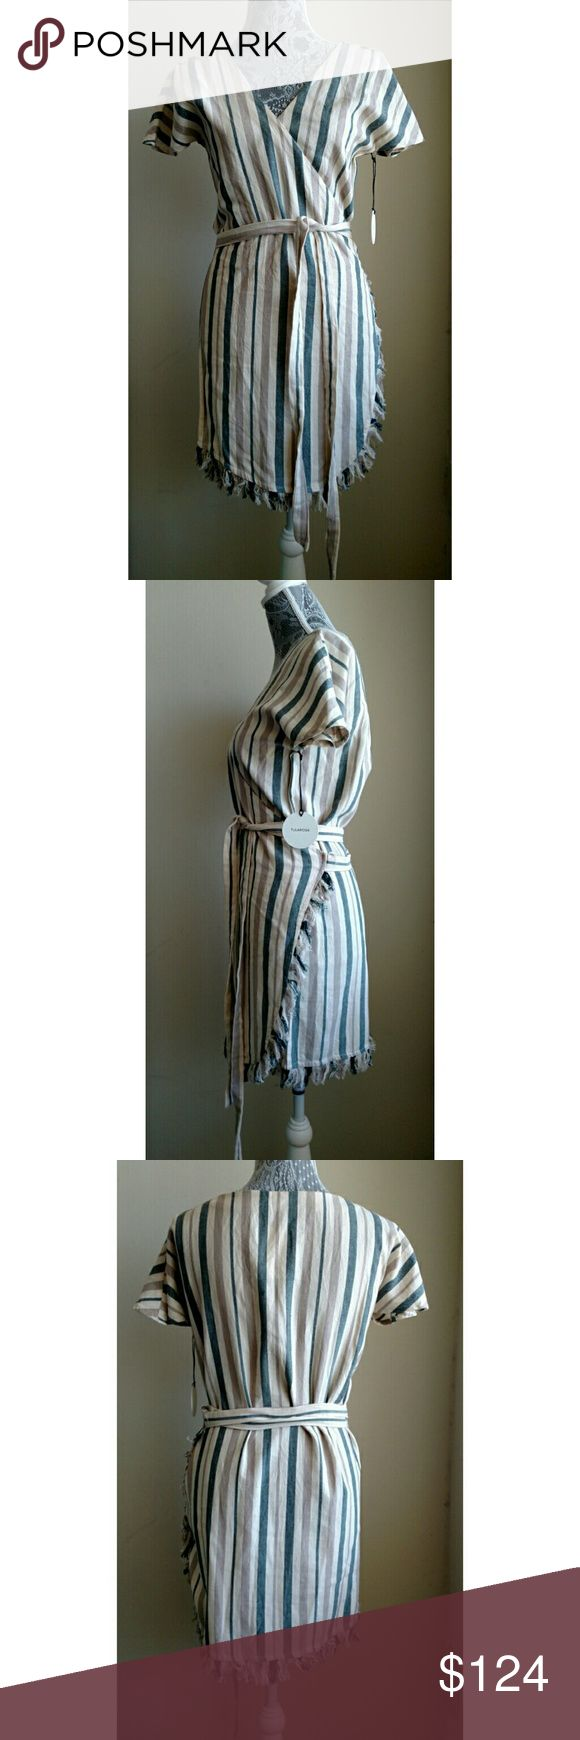 Tularosa Didion Stripe Wrap Dress - Size S - NWT Tularosa Didion Stripe Wrap Dress - Size S - New with Tags (NWT)  Didion wrap dress in La Rochelle Stripe (Cream, beige, cornflower / air force blue) has sun-faded stripes. Dress has a fringe trimmed hem with a southwestern feel.  True wrap style with self-tie closure. Surplice v-neck. Short sleeves. Unlined.  Color:  La Rochelle Stripe (Cream, beige, cornflower / air force blue)  Style: TRDR3704WH  Materials: 100% cotton  Machine wash cold…